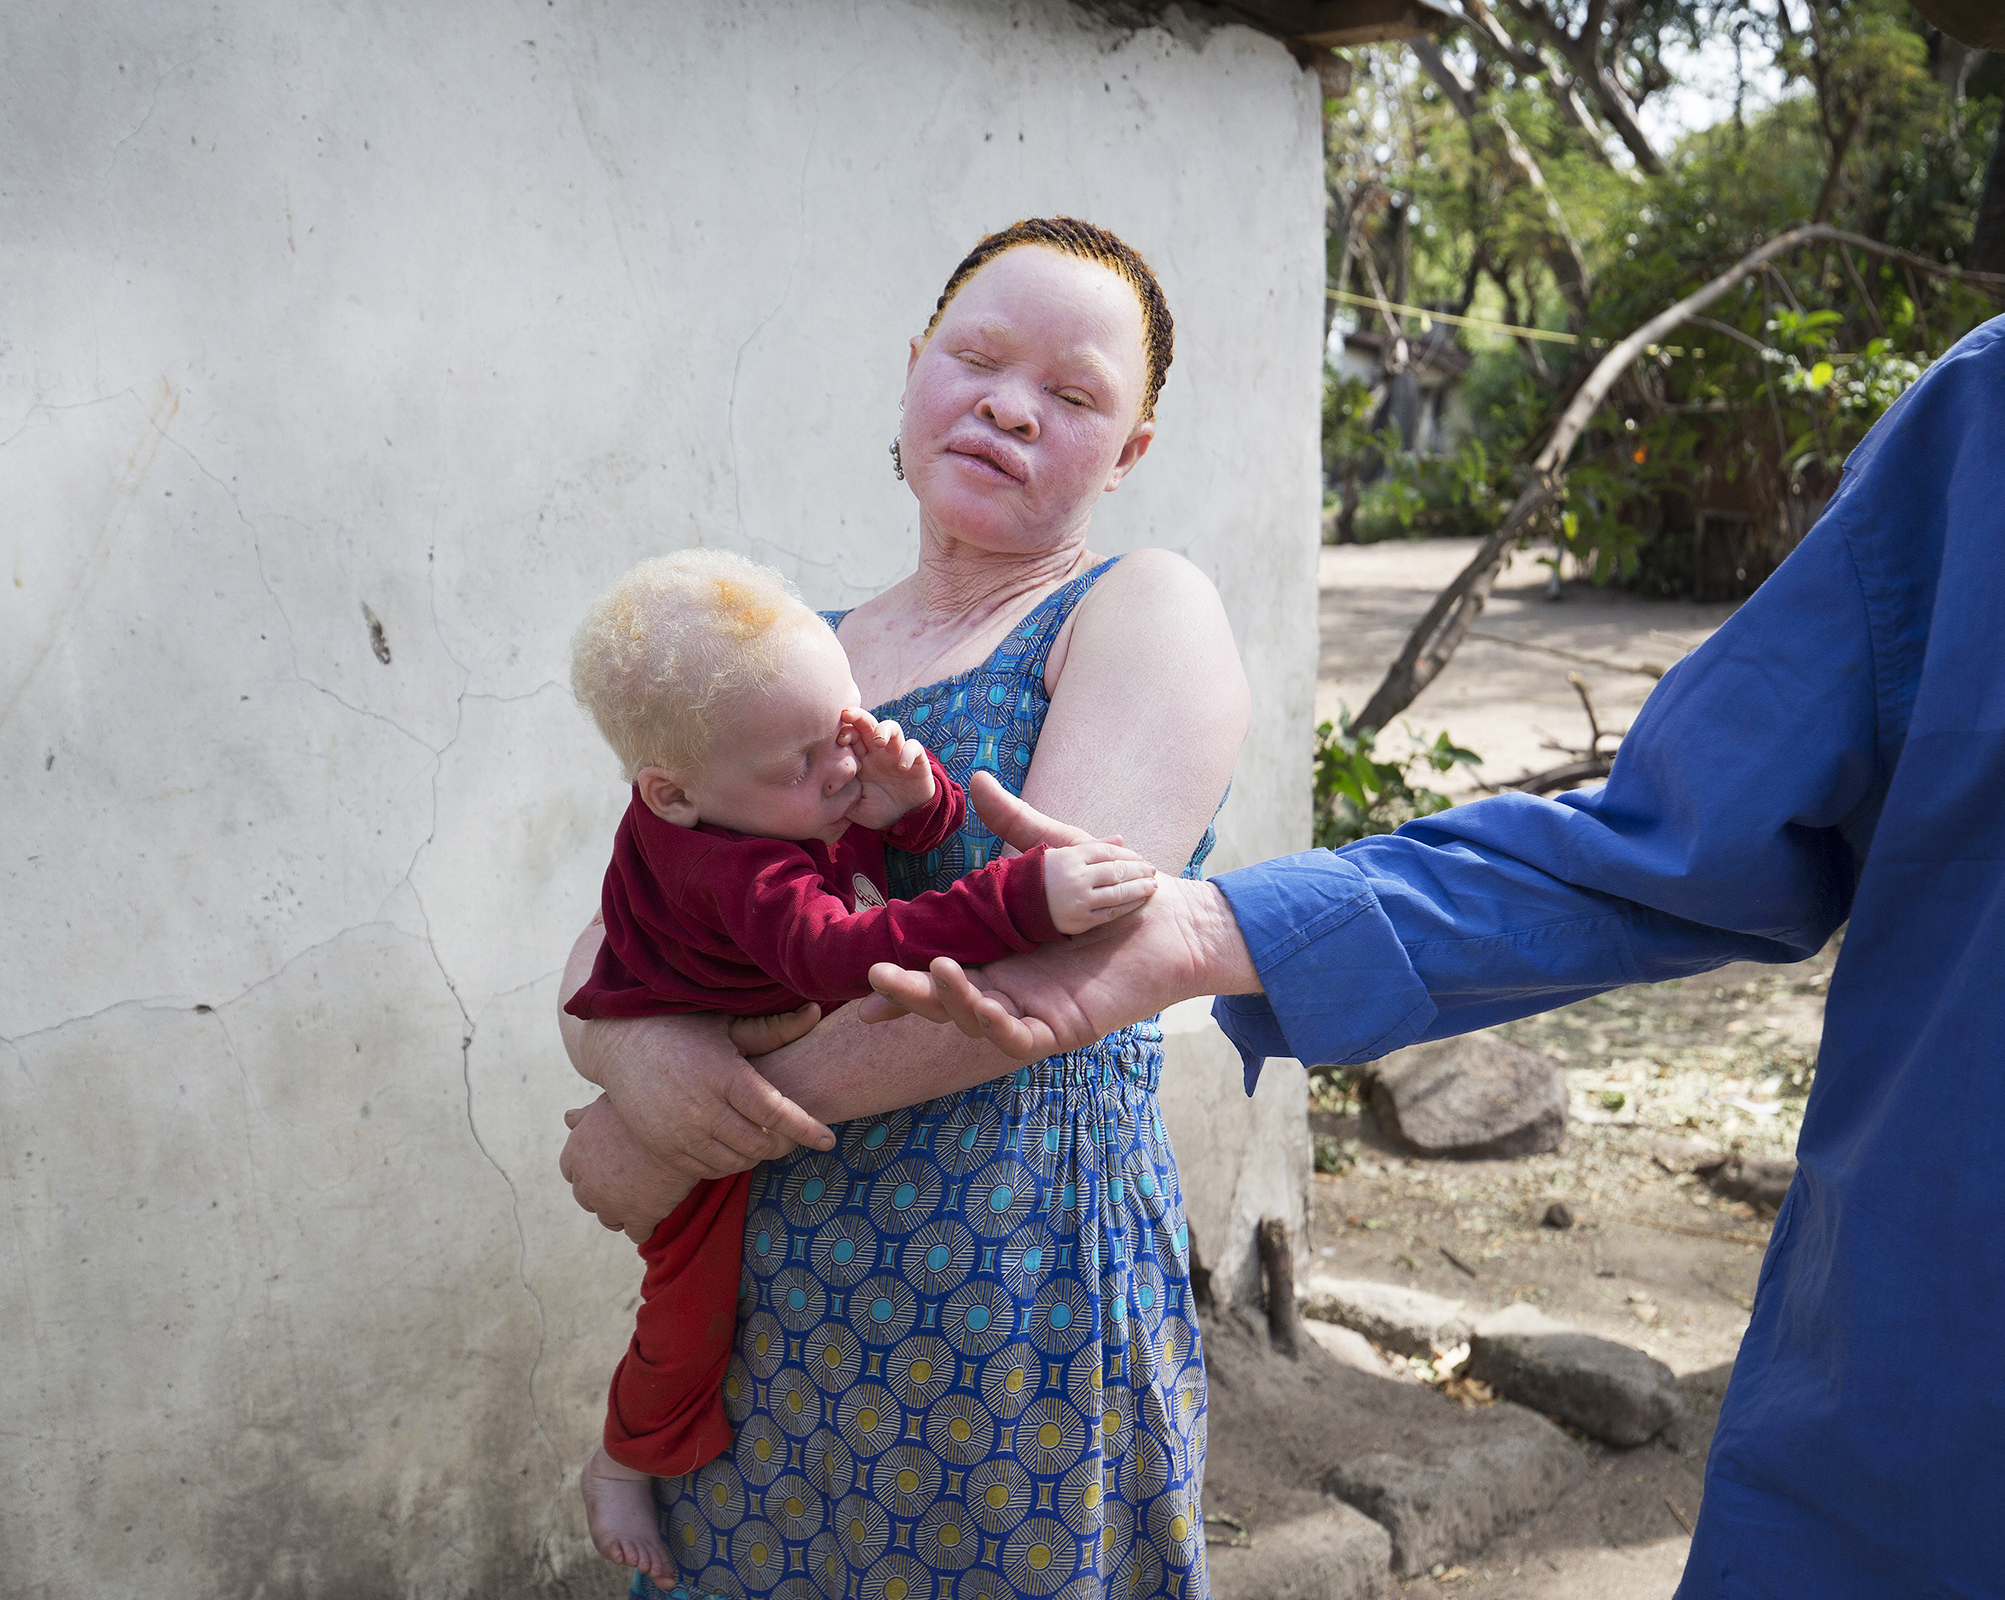 In many communities dangerous myths that 'children with albinism were produced because the ghost of colonialists impregnated their mothers' lead to husbands abandoning their wives and family's. Babies are routinely slaughtered at birth; those who survive often endure years of abuse.